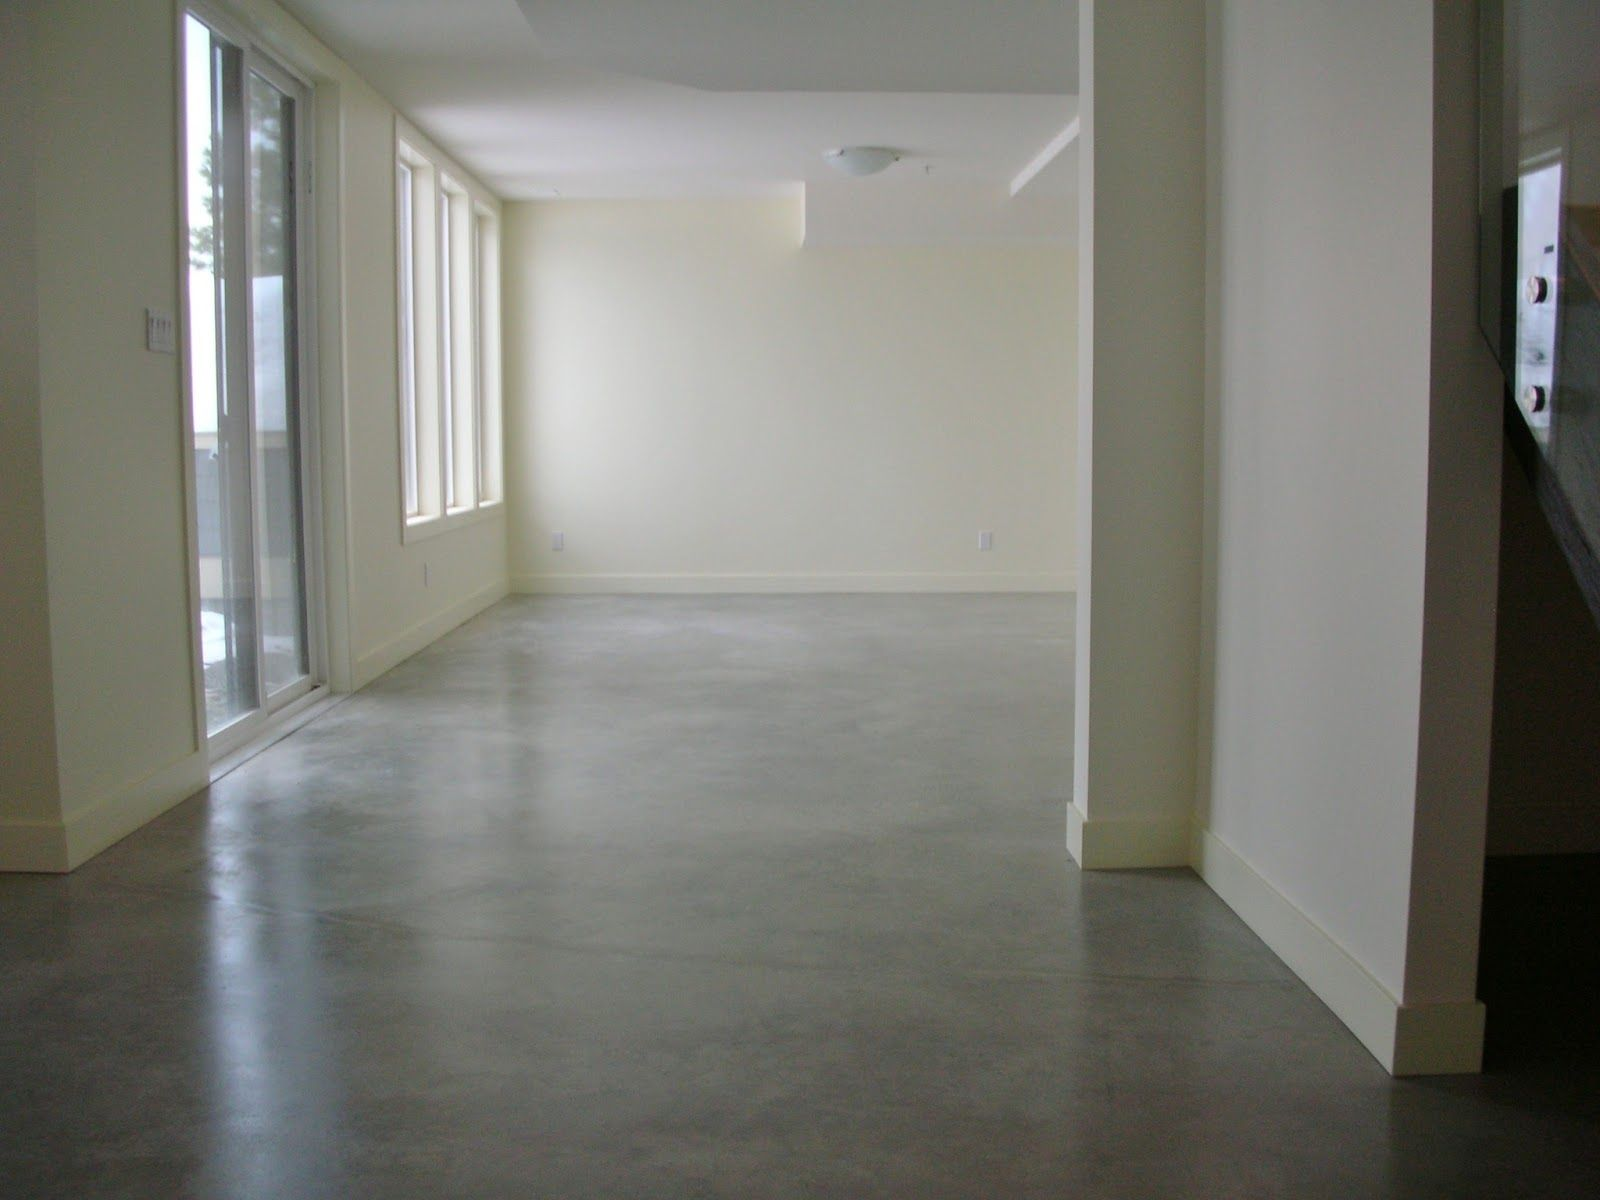 Simple Process With Concrete Sealers And Wax Concrete Stained Floors Concrete Floors Concrete Floors Cost